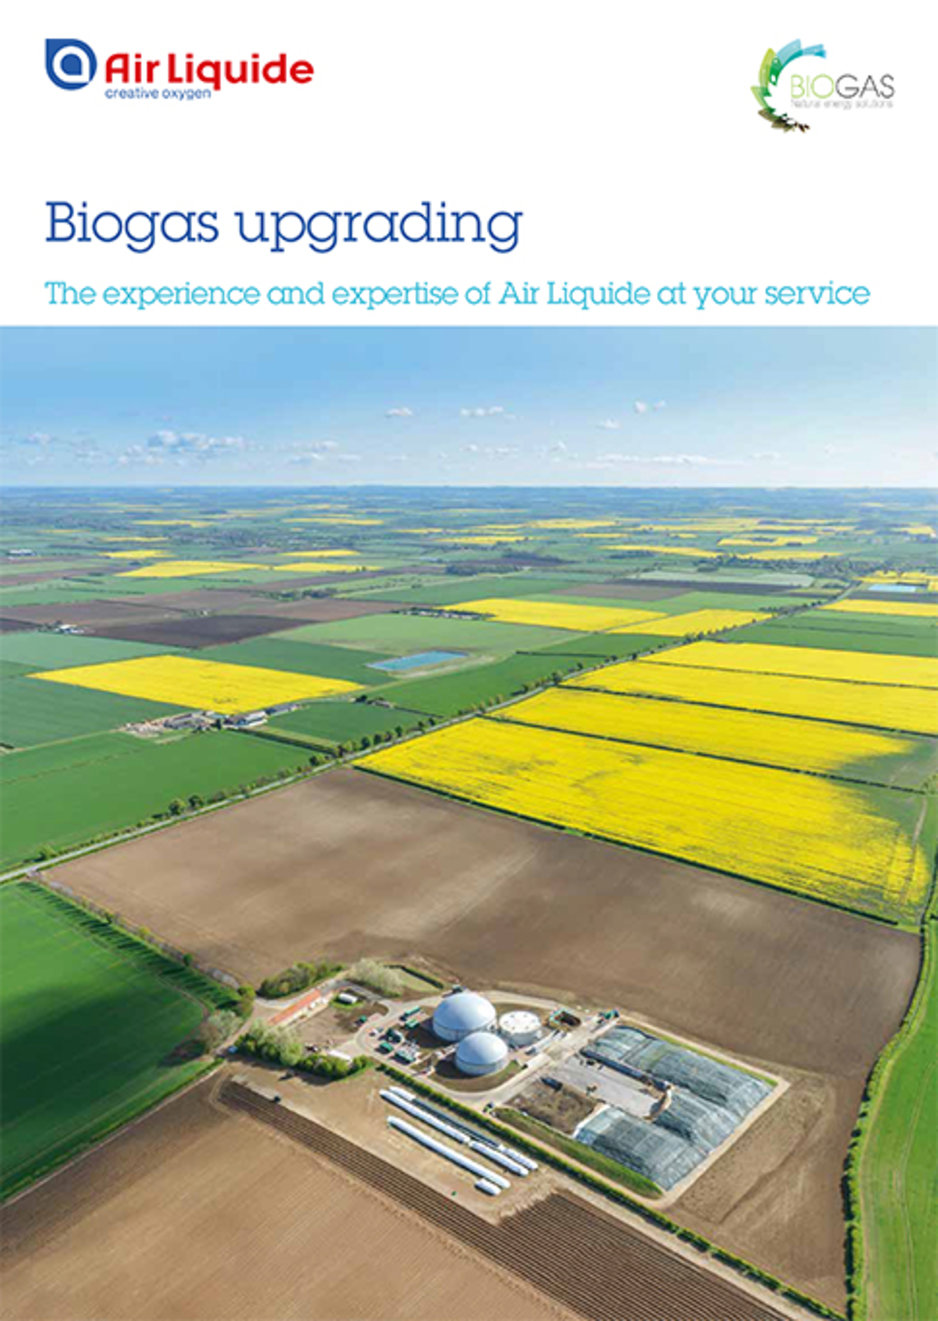 biogas brochure cover